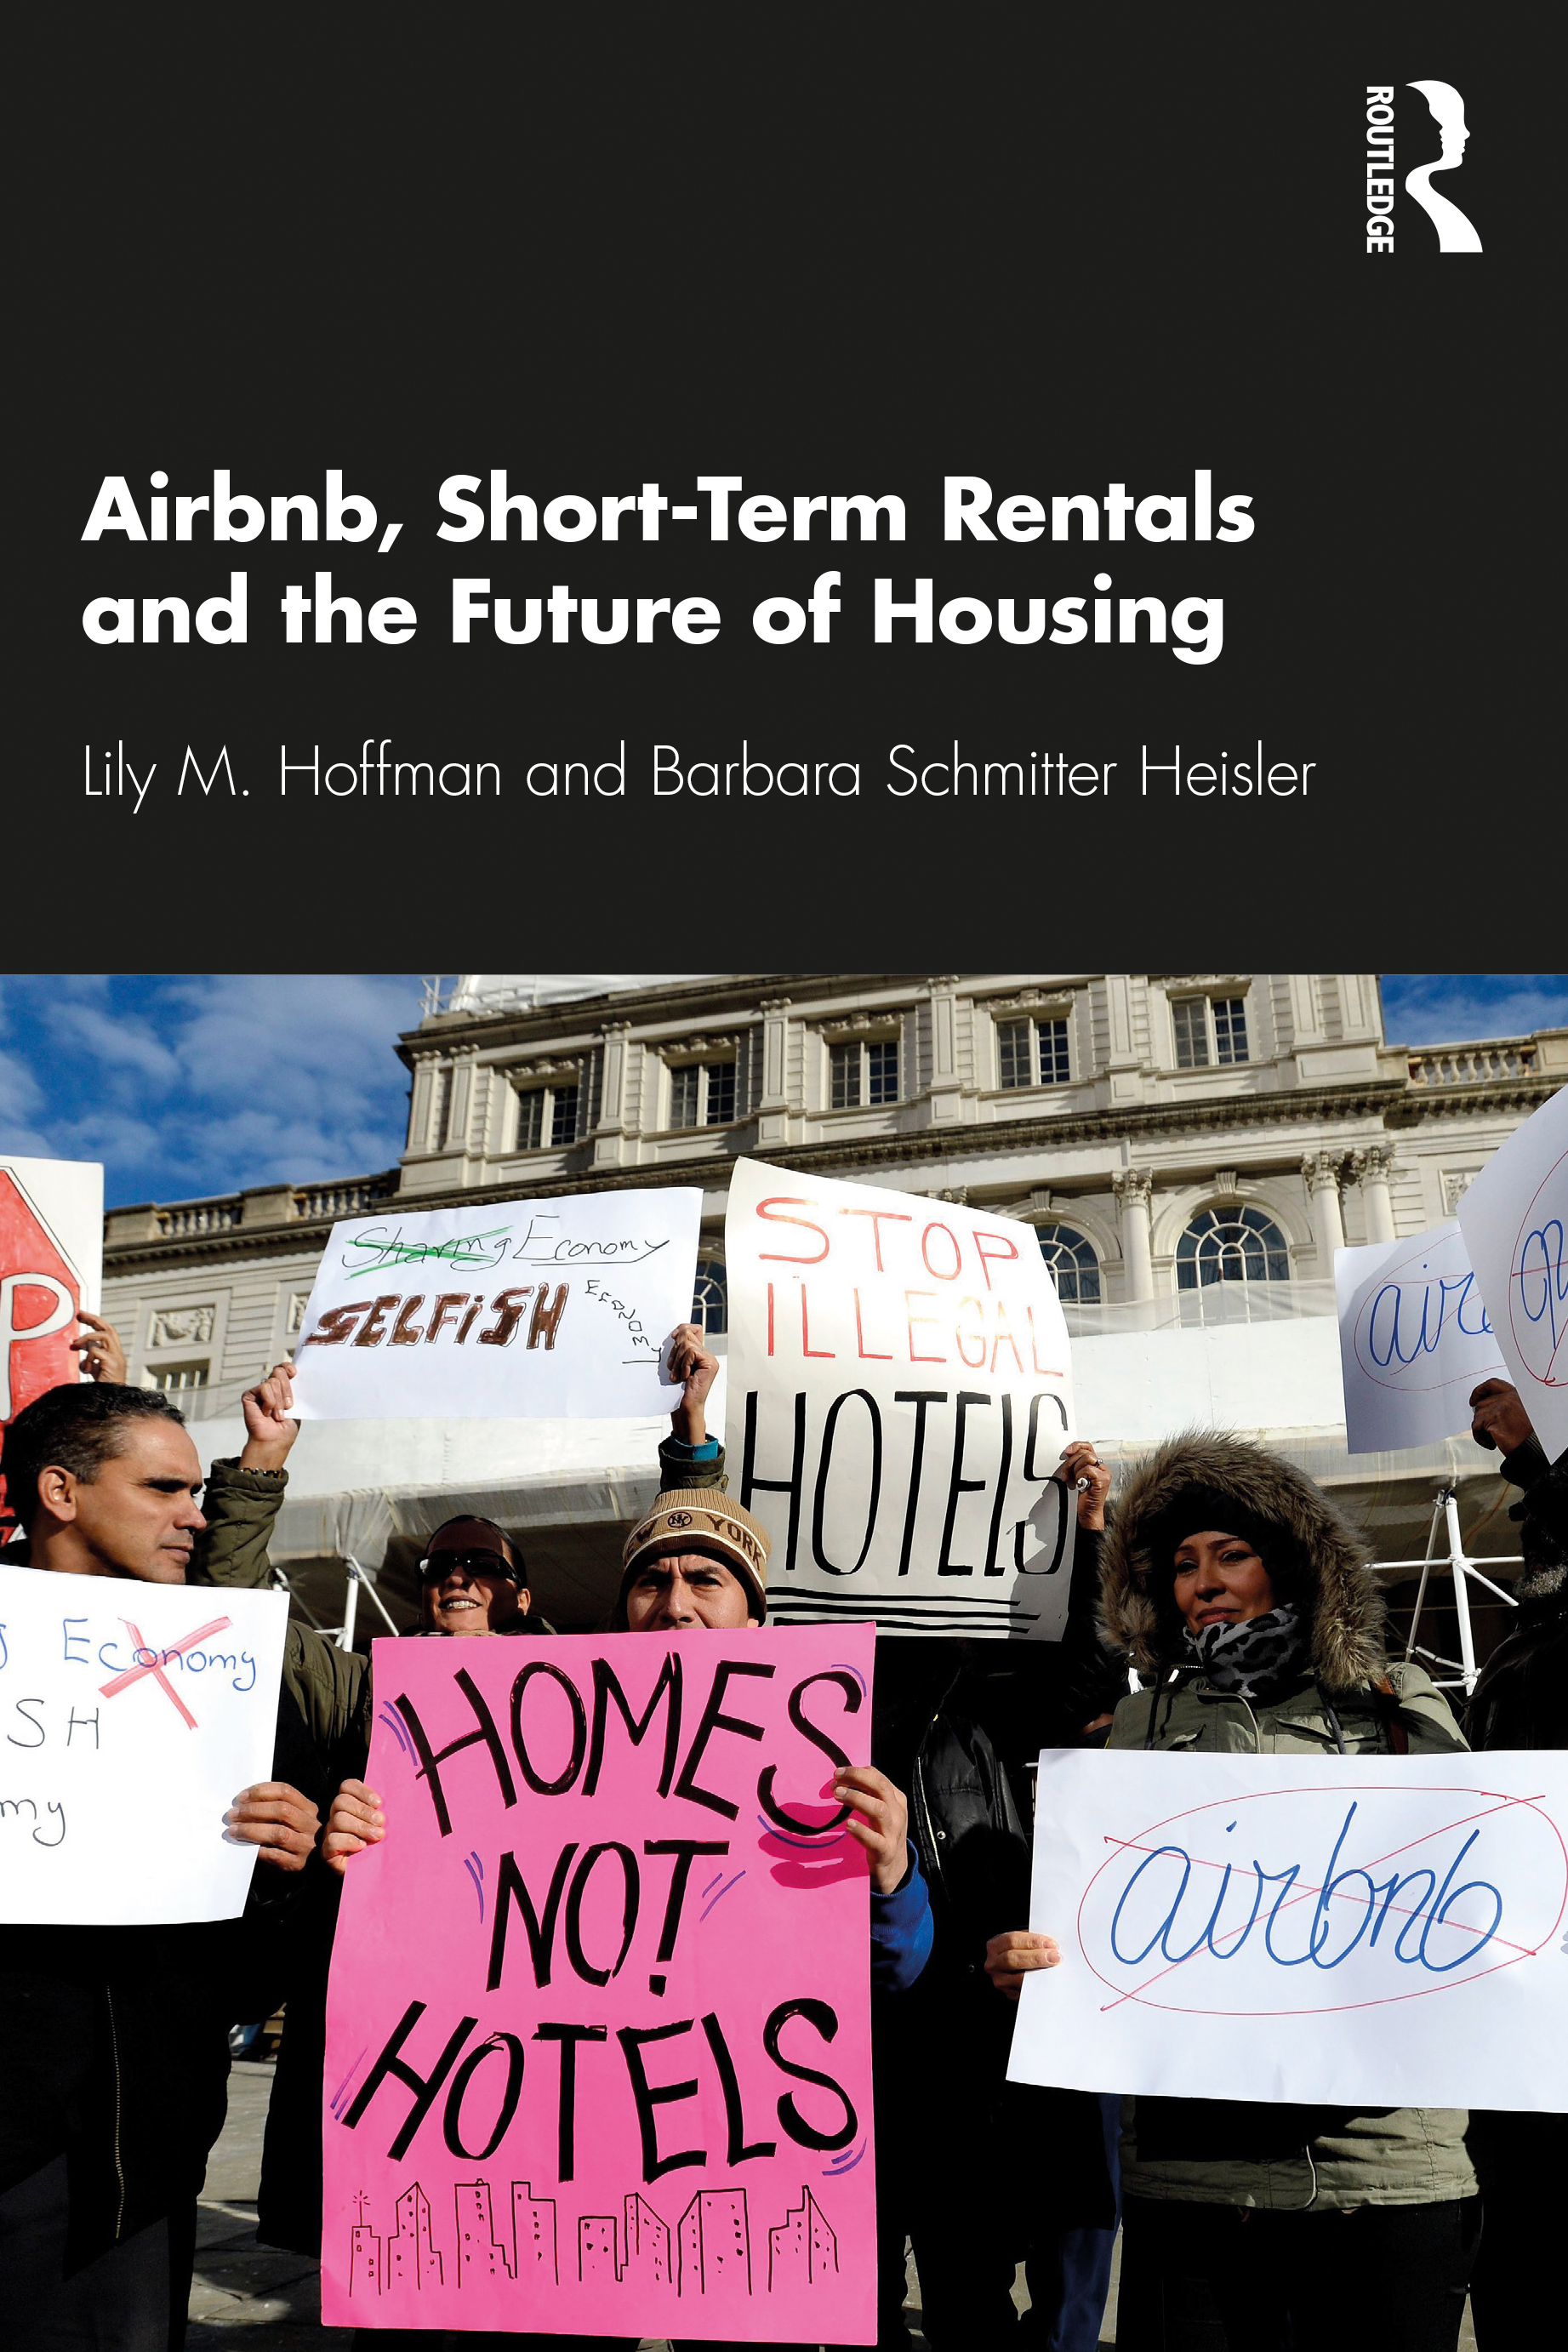 Airbnb, Short-Term Rentals and the Future of Housing